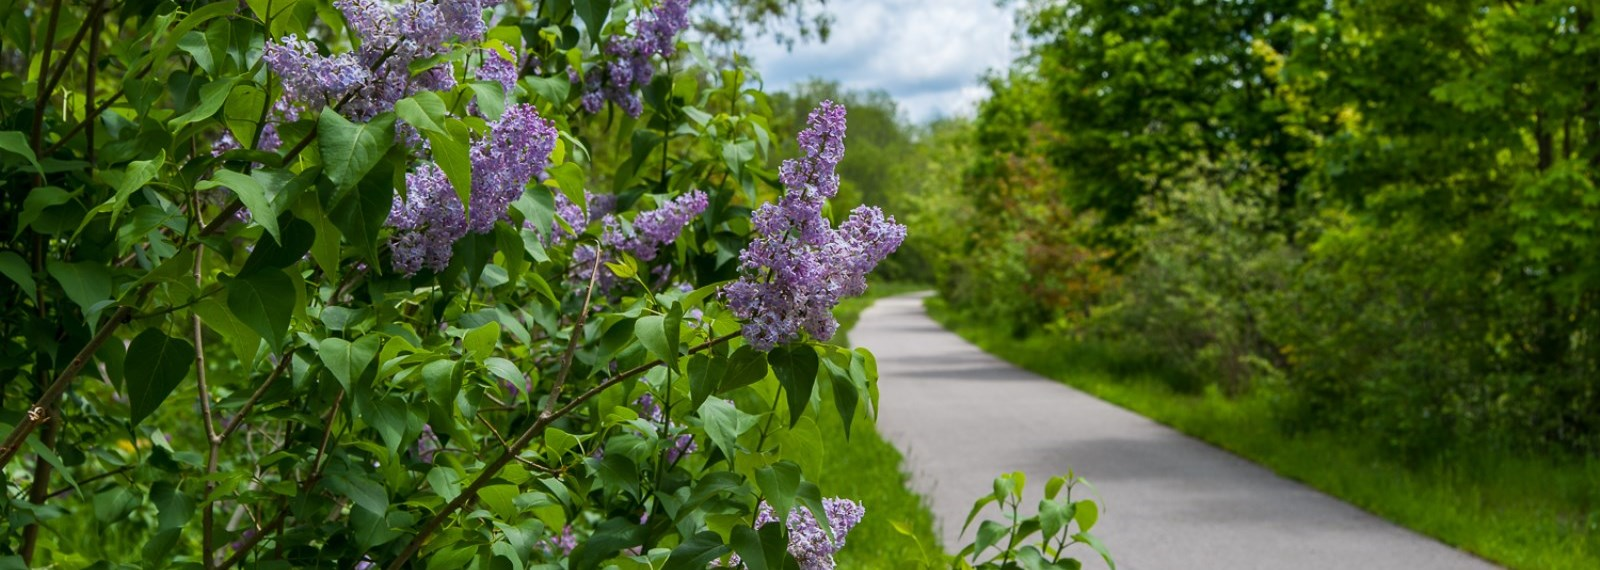 blooming lilac bush and paved trail